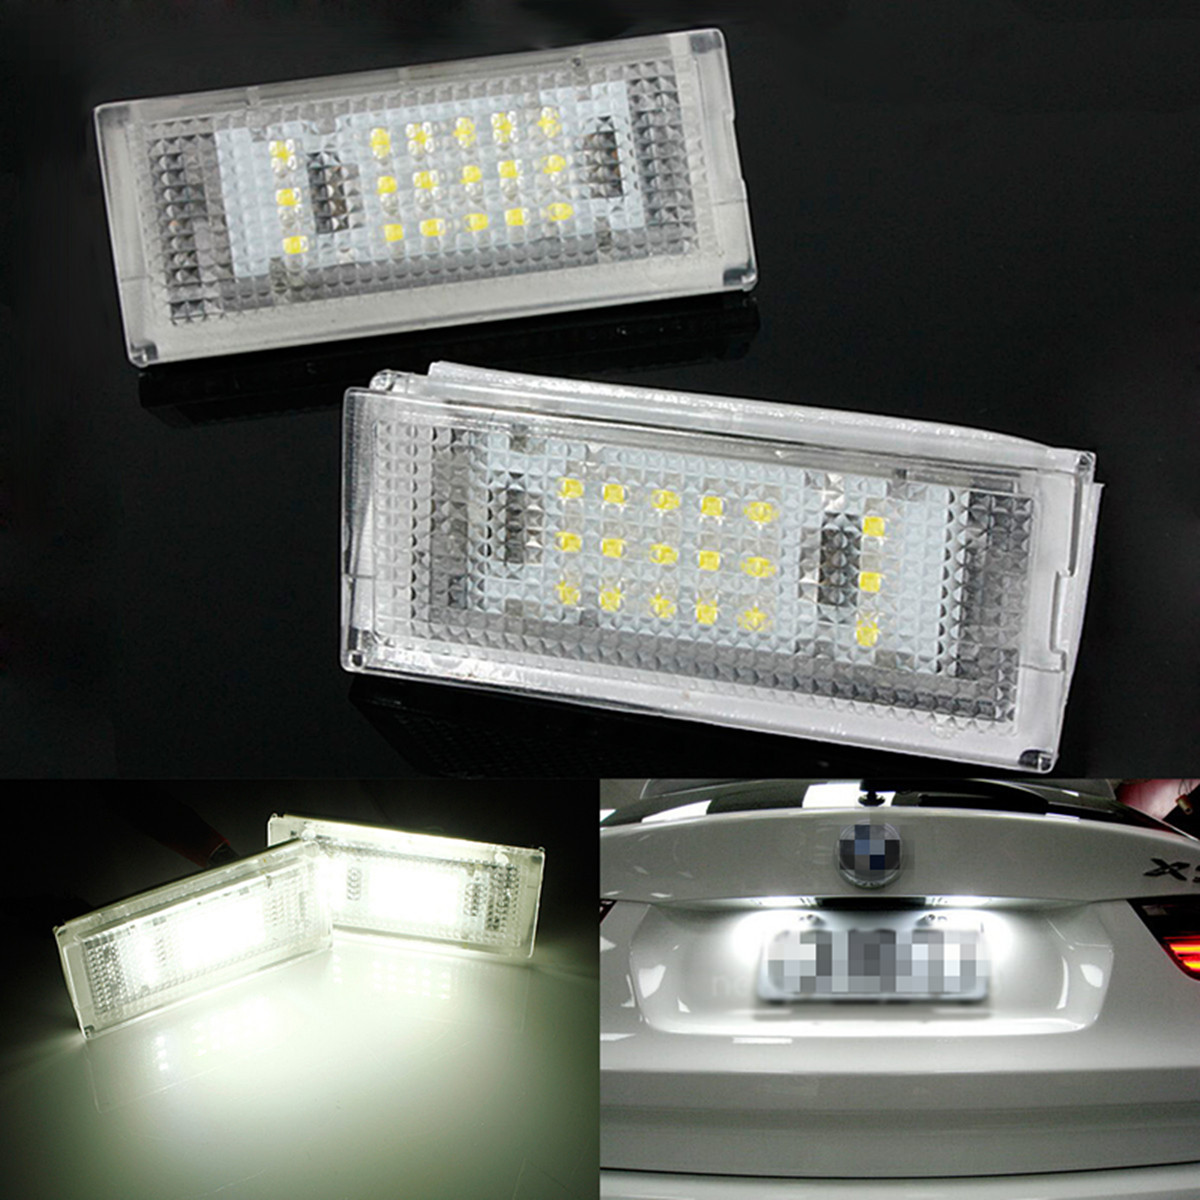 2Pcs 18 LED 6000K For HID License Plate Light Number Plate Lamp For BMW E46 4D 4Doors 323i 325i 328i 99-03 Error Free fsylx error free white led number license plate lights for bmw e53 x5 12v led number license plate lights for bmw e39 z8 e52